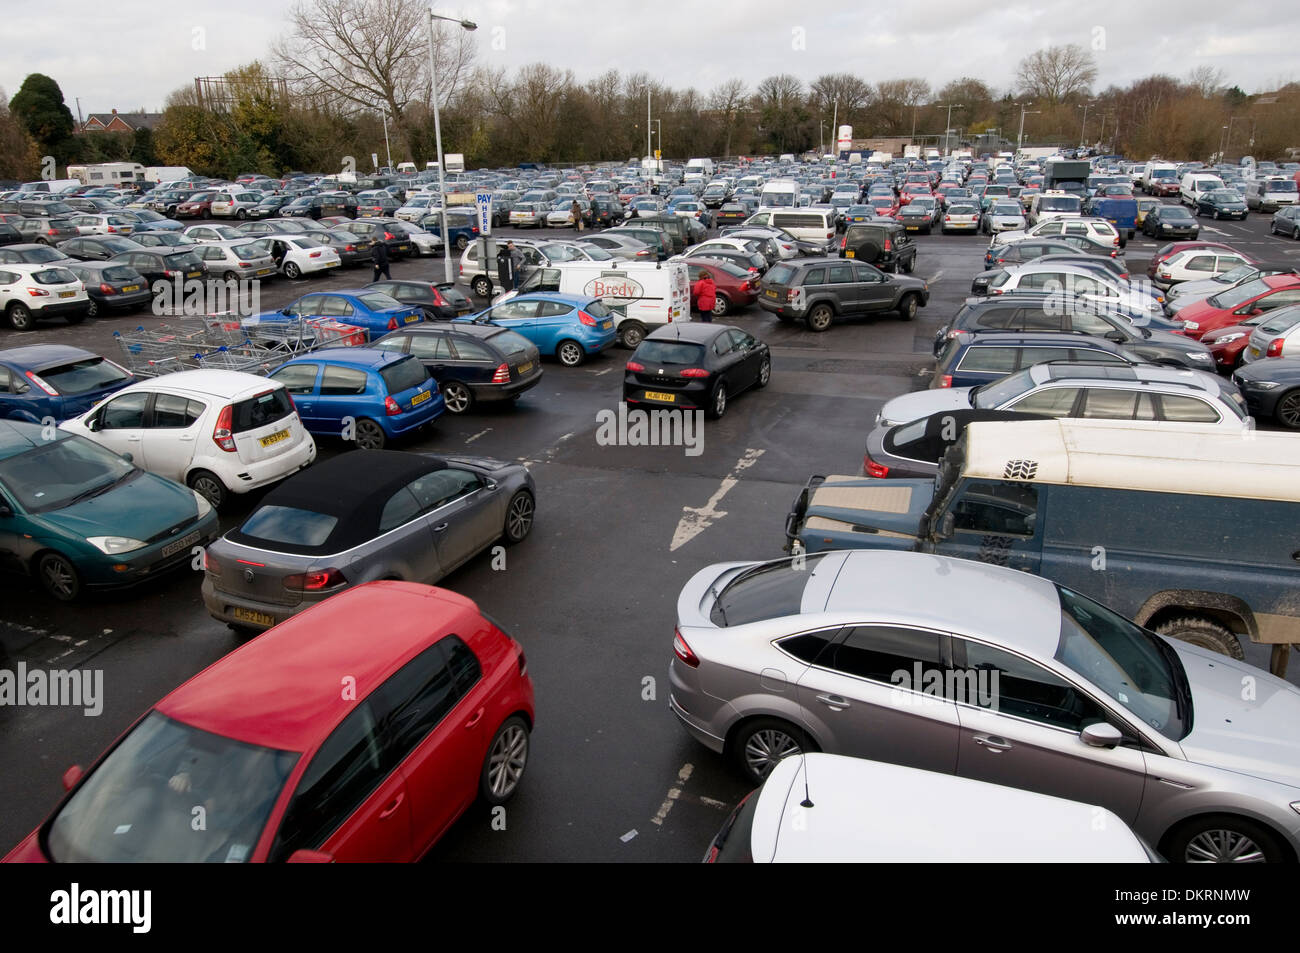 car parks park parking uk cars parked pay and display town center packed full busy - Stock Image